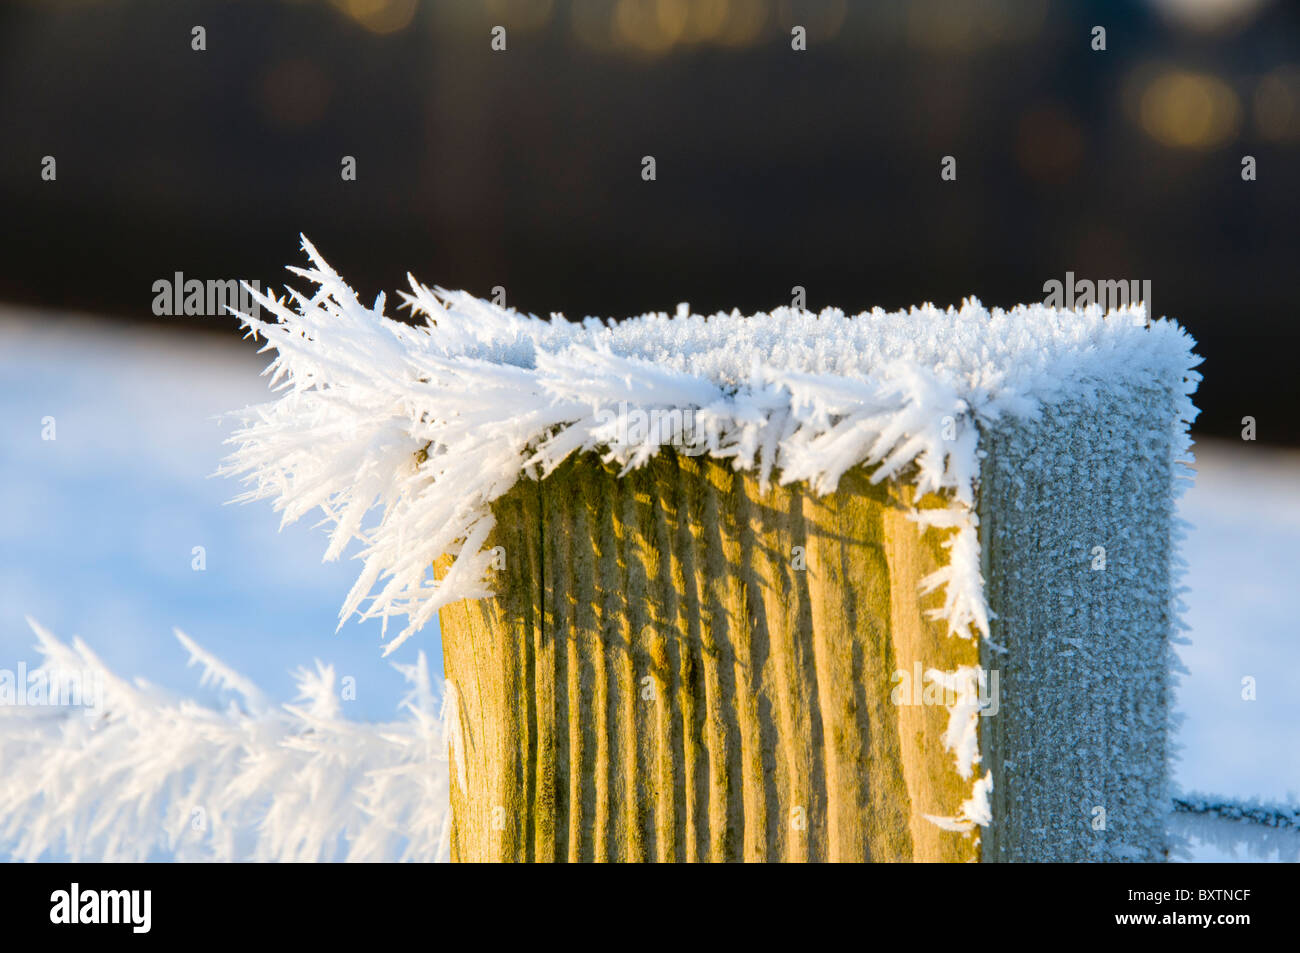 Frost crystals on a fence post, near the village of Scarfskerry, Caithness, Scotland, UK - Stock Image